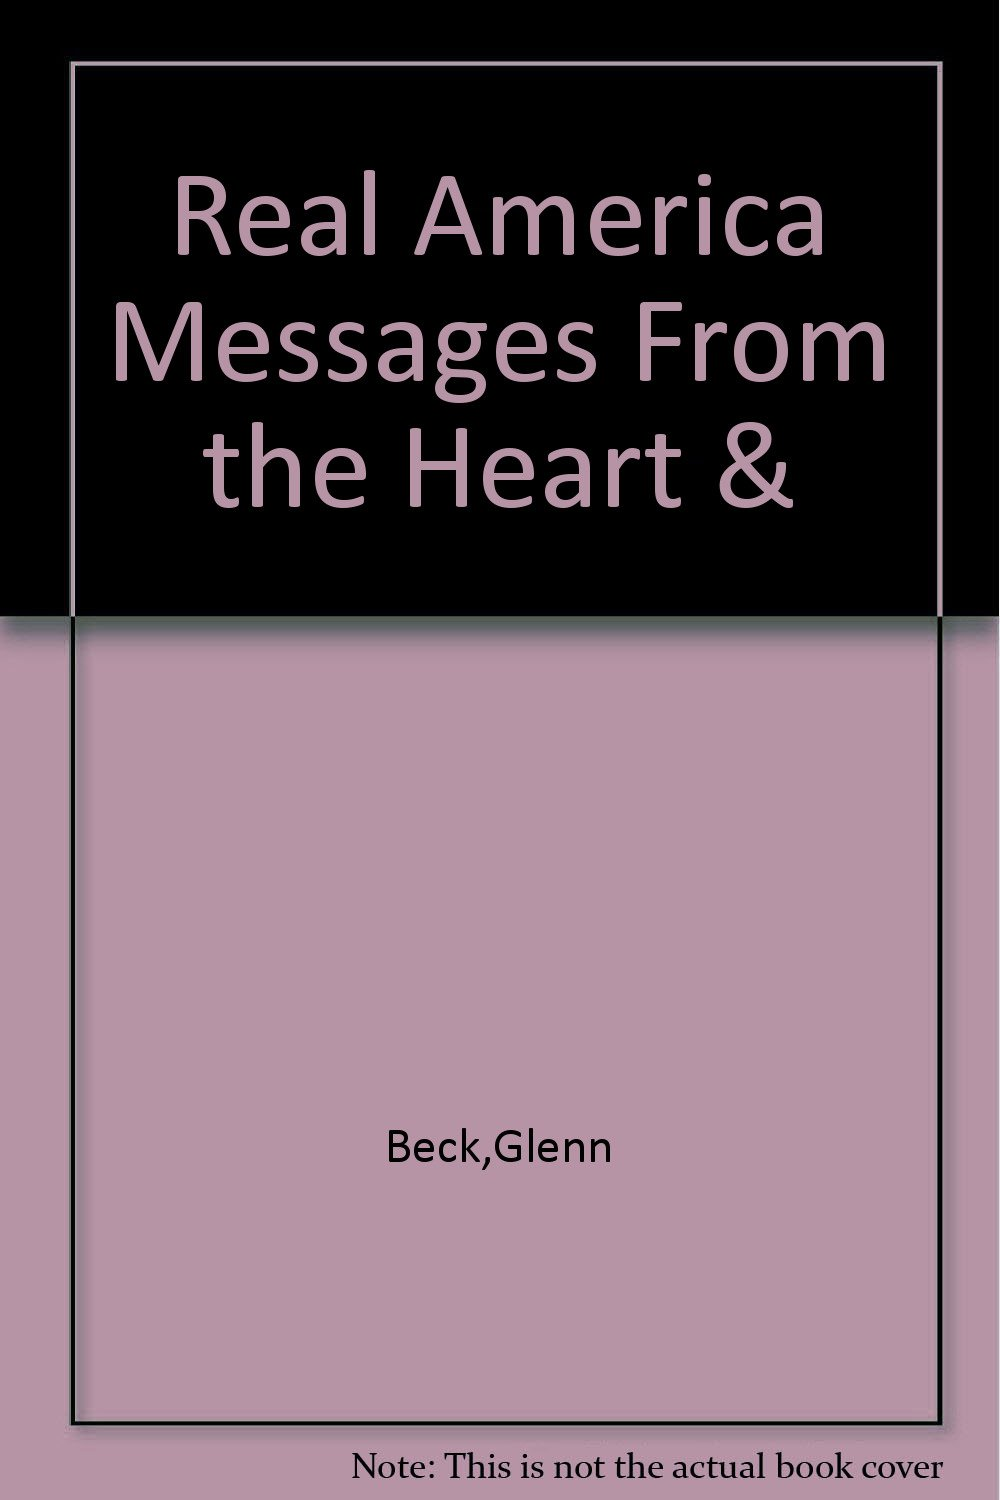 Real America Messages From the Heart & pdf